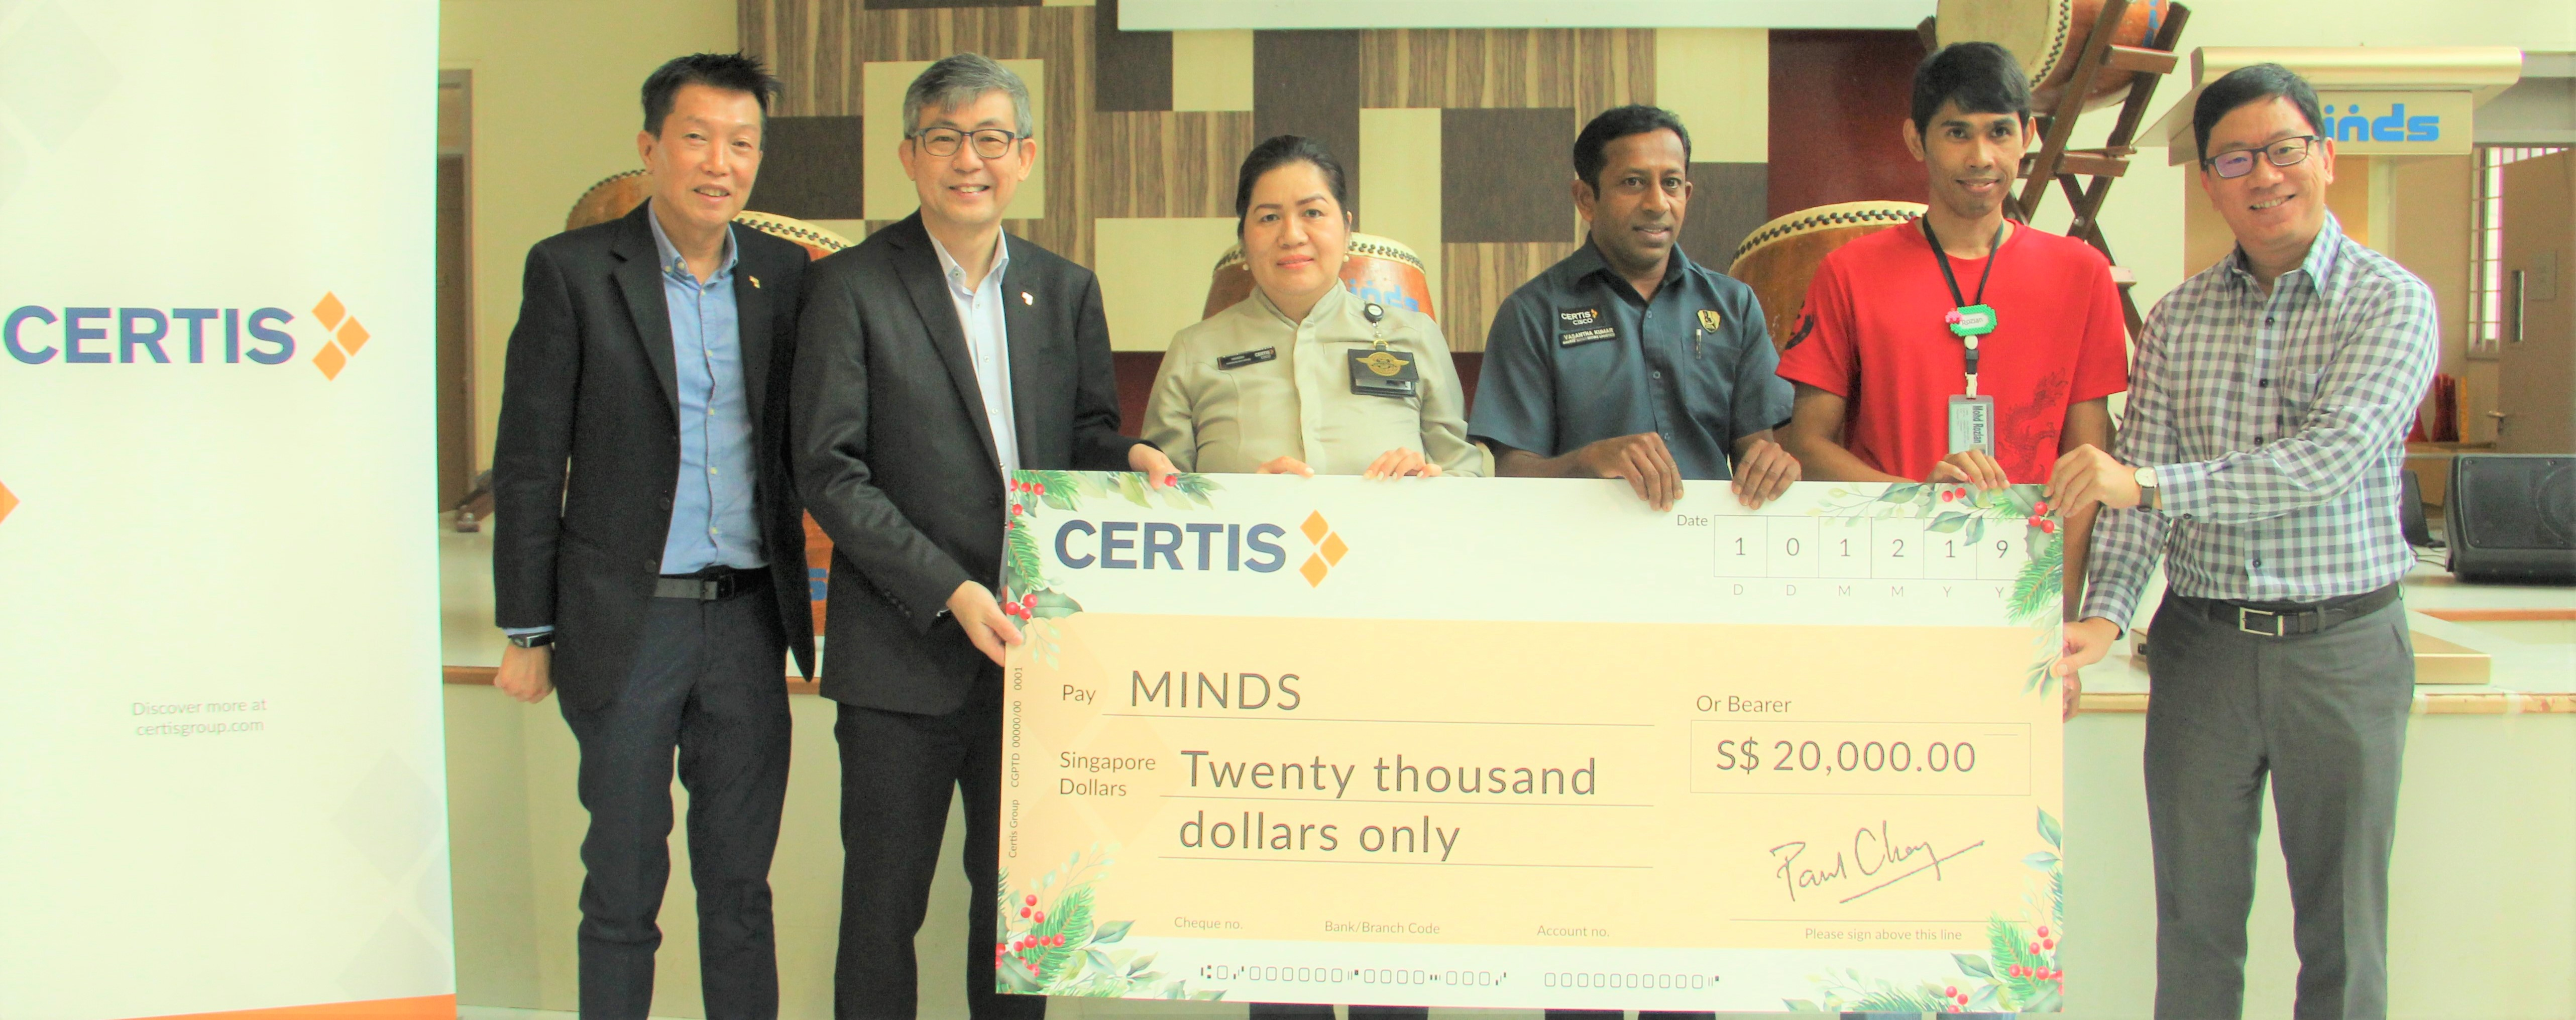 Certis Spreads Christmas Cheer at MINDS